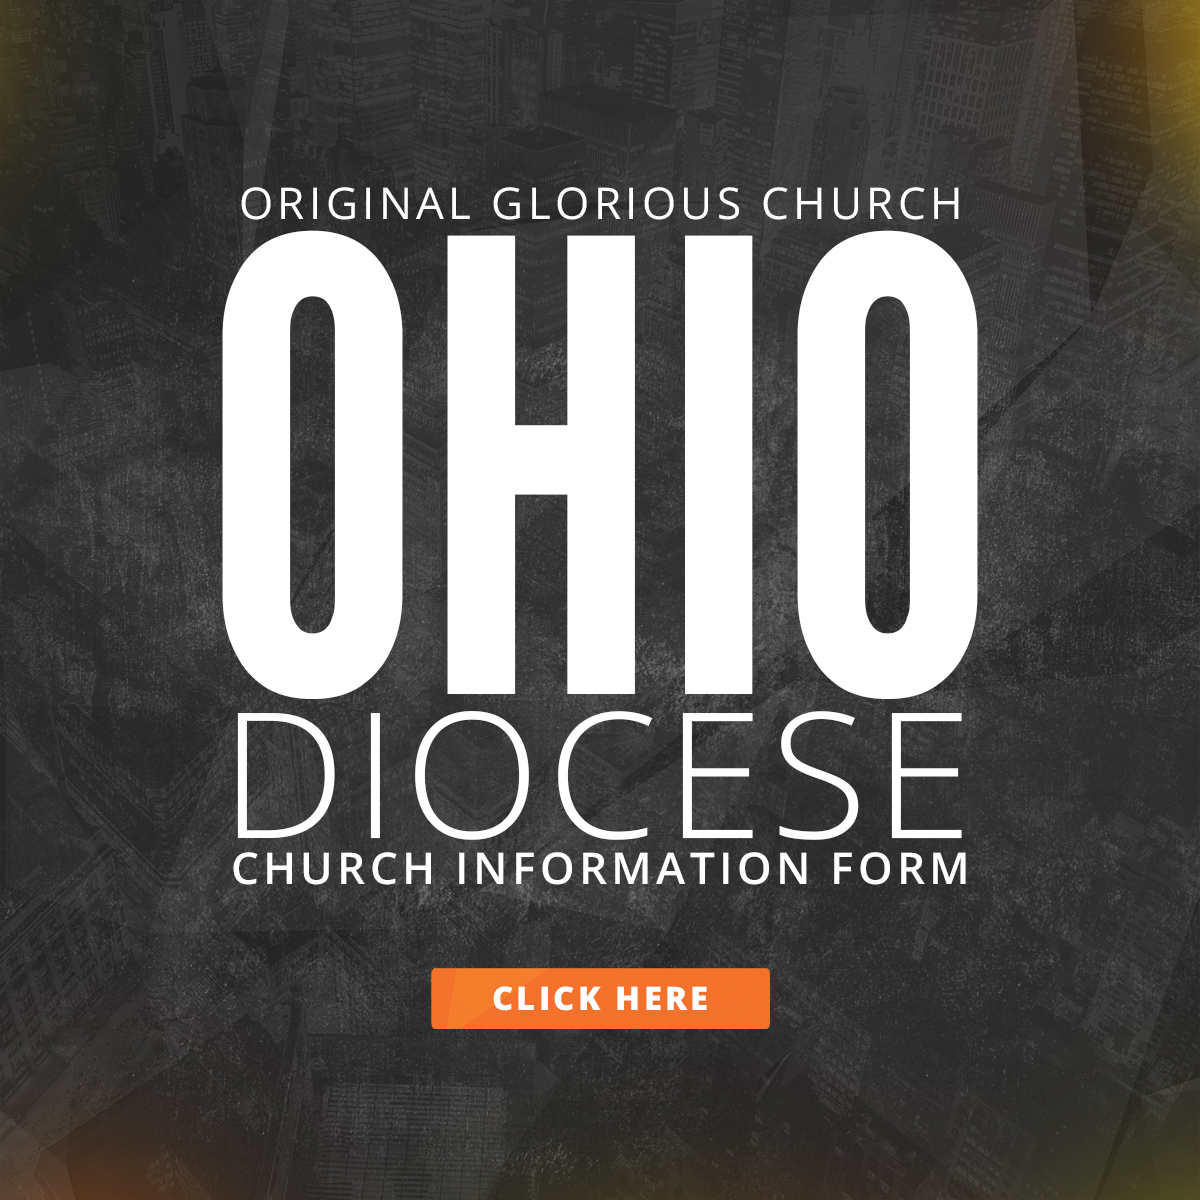 Church Contact Information